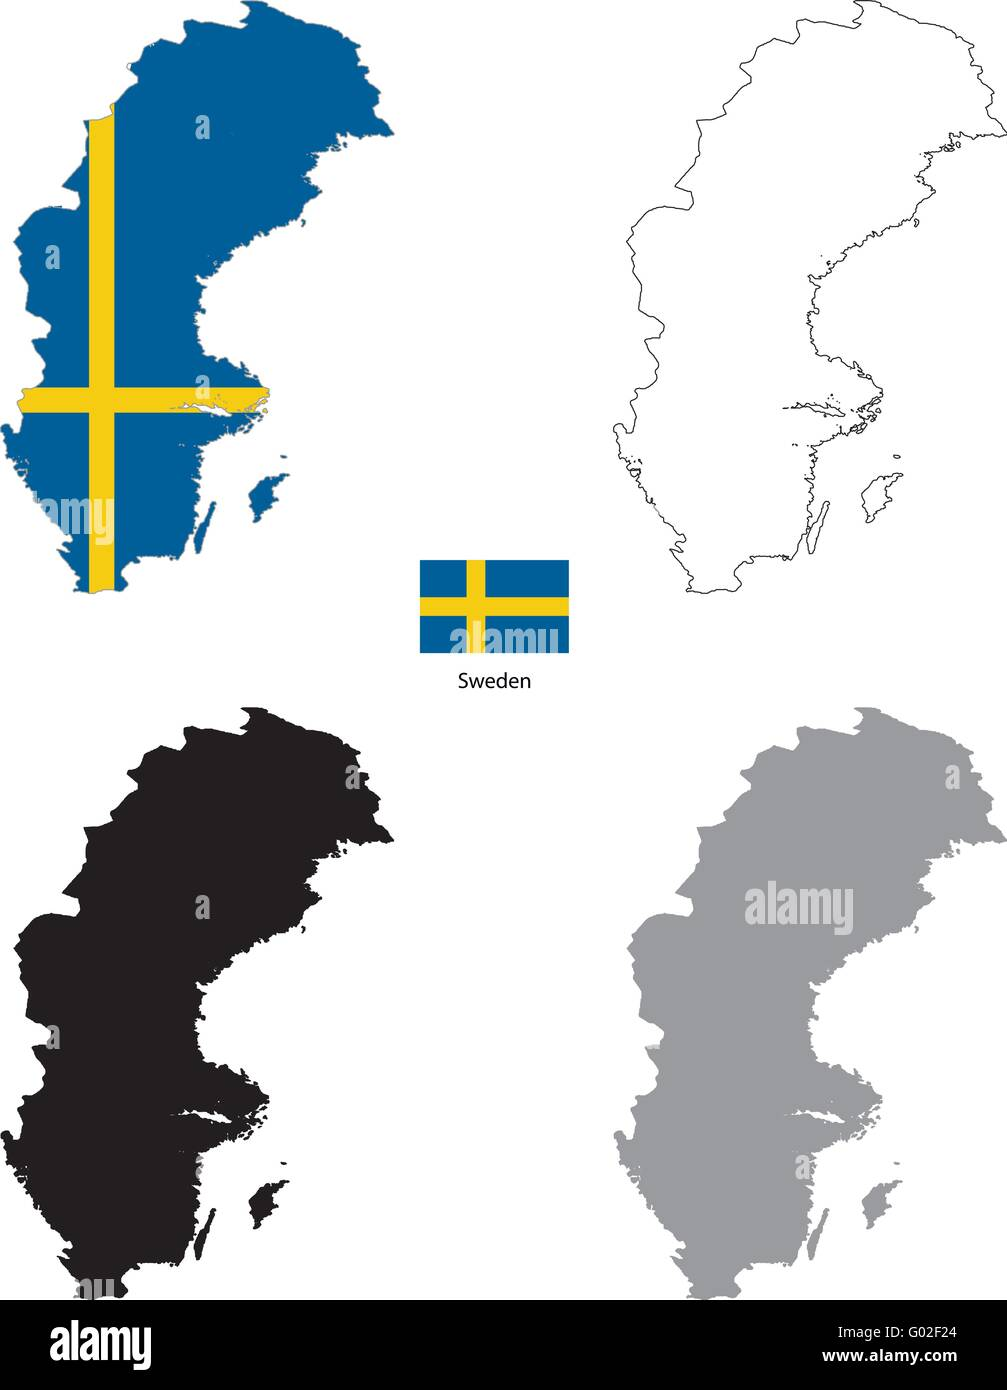 Sweden country black silhouette and with flag on background - Stock Image